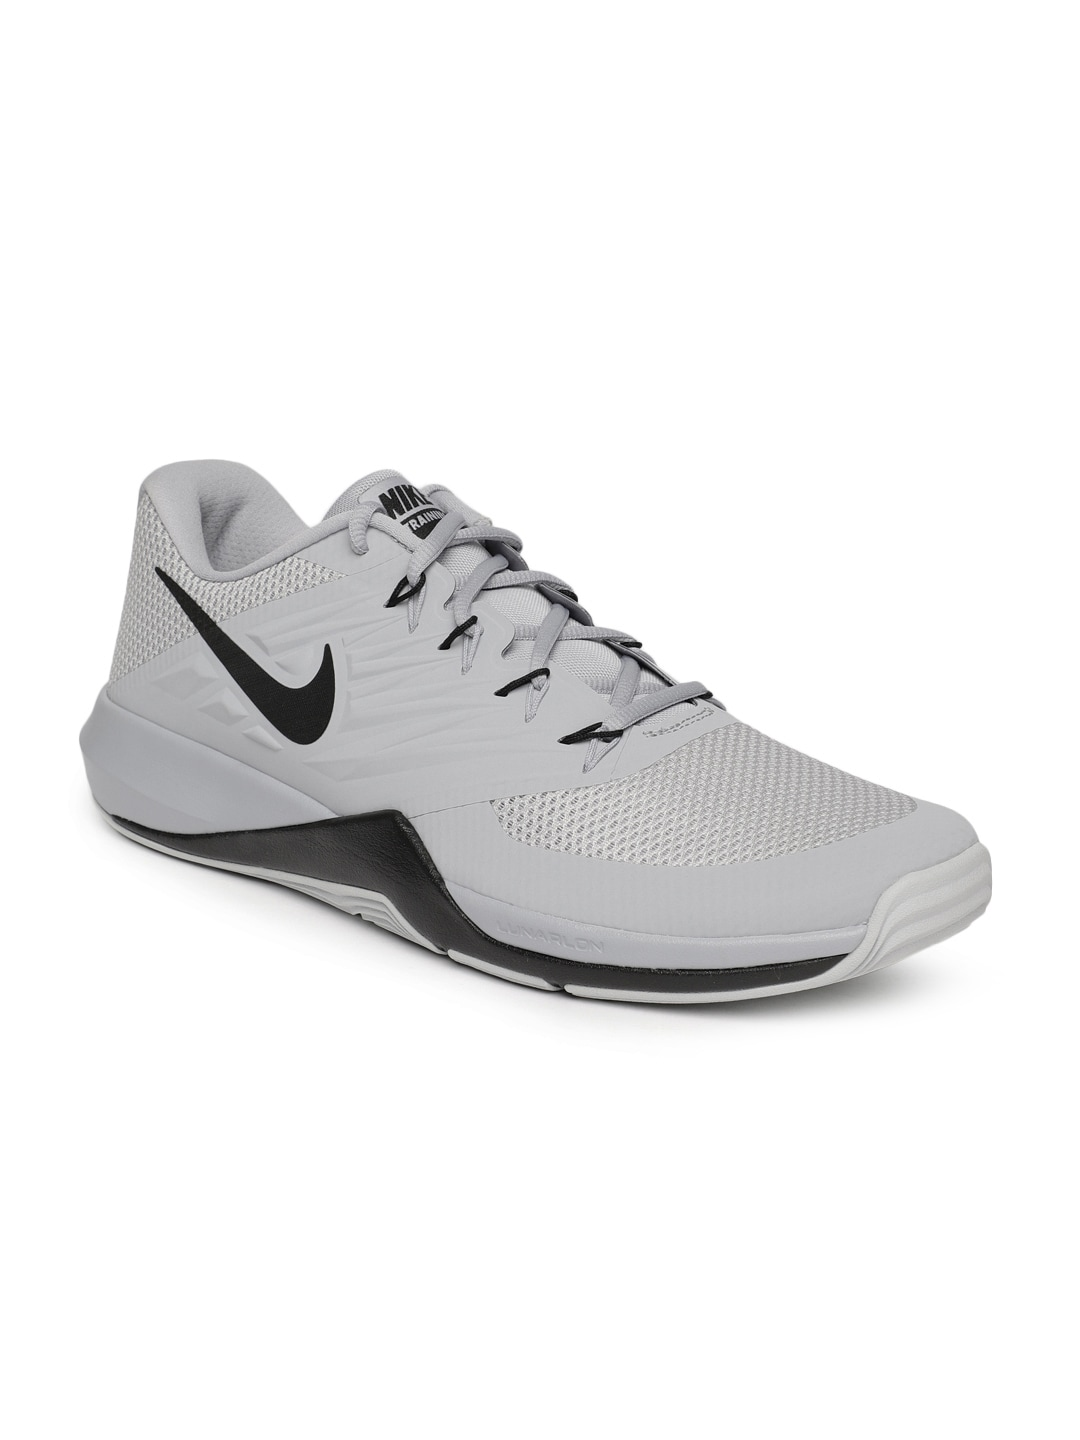 9c08361cfd28 Nike Tops Sports Shoes - Buy Nike Tops Sports Shoes online in India